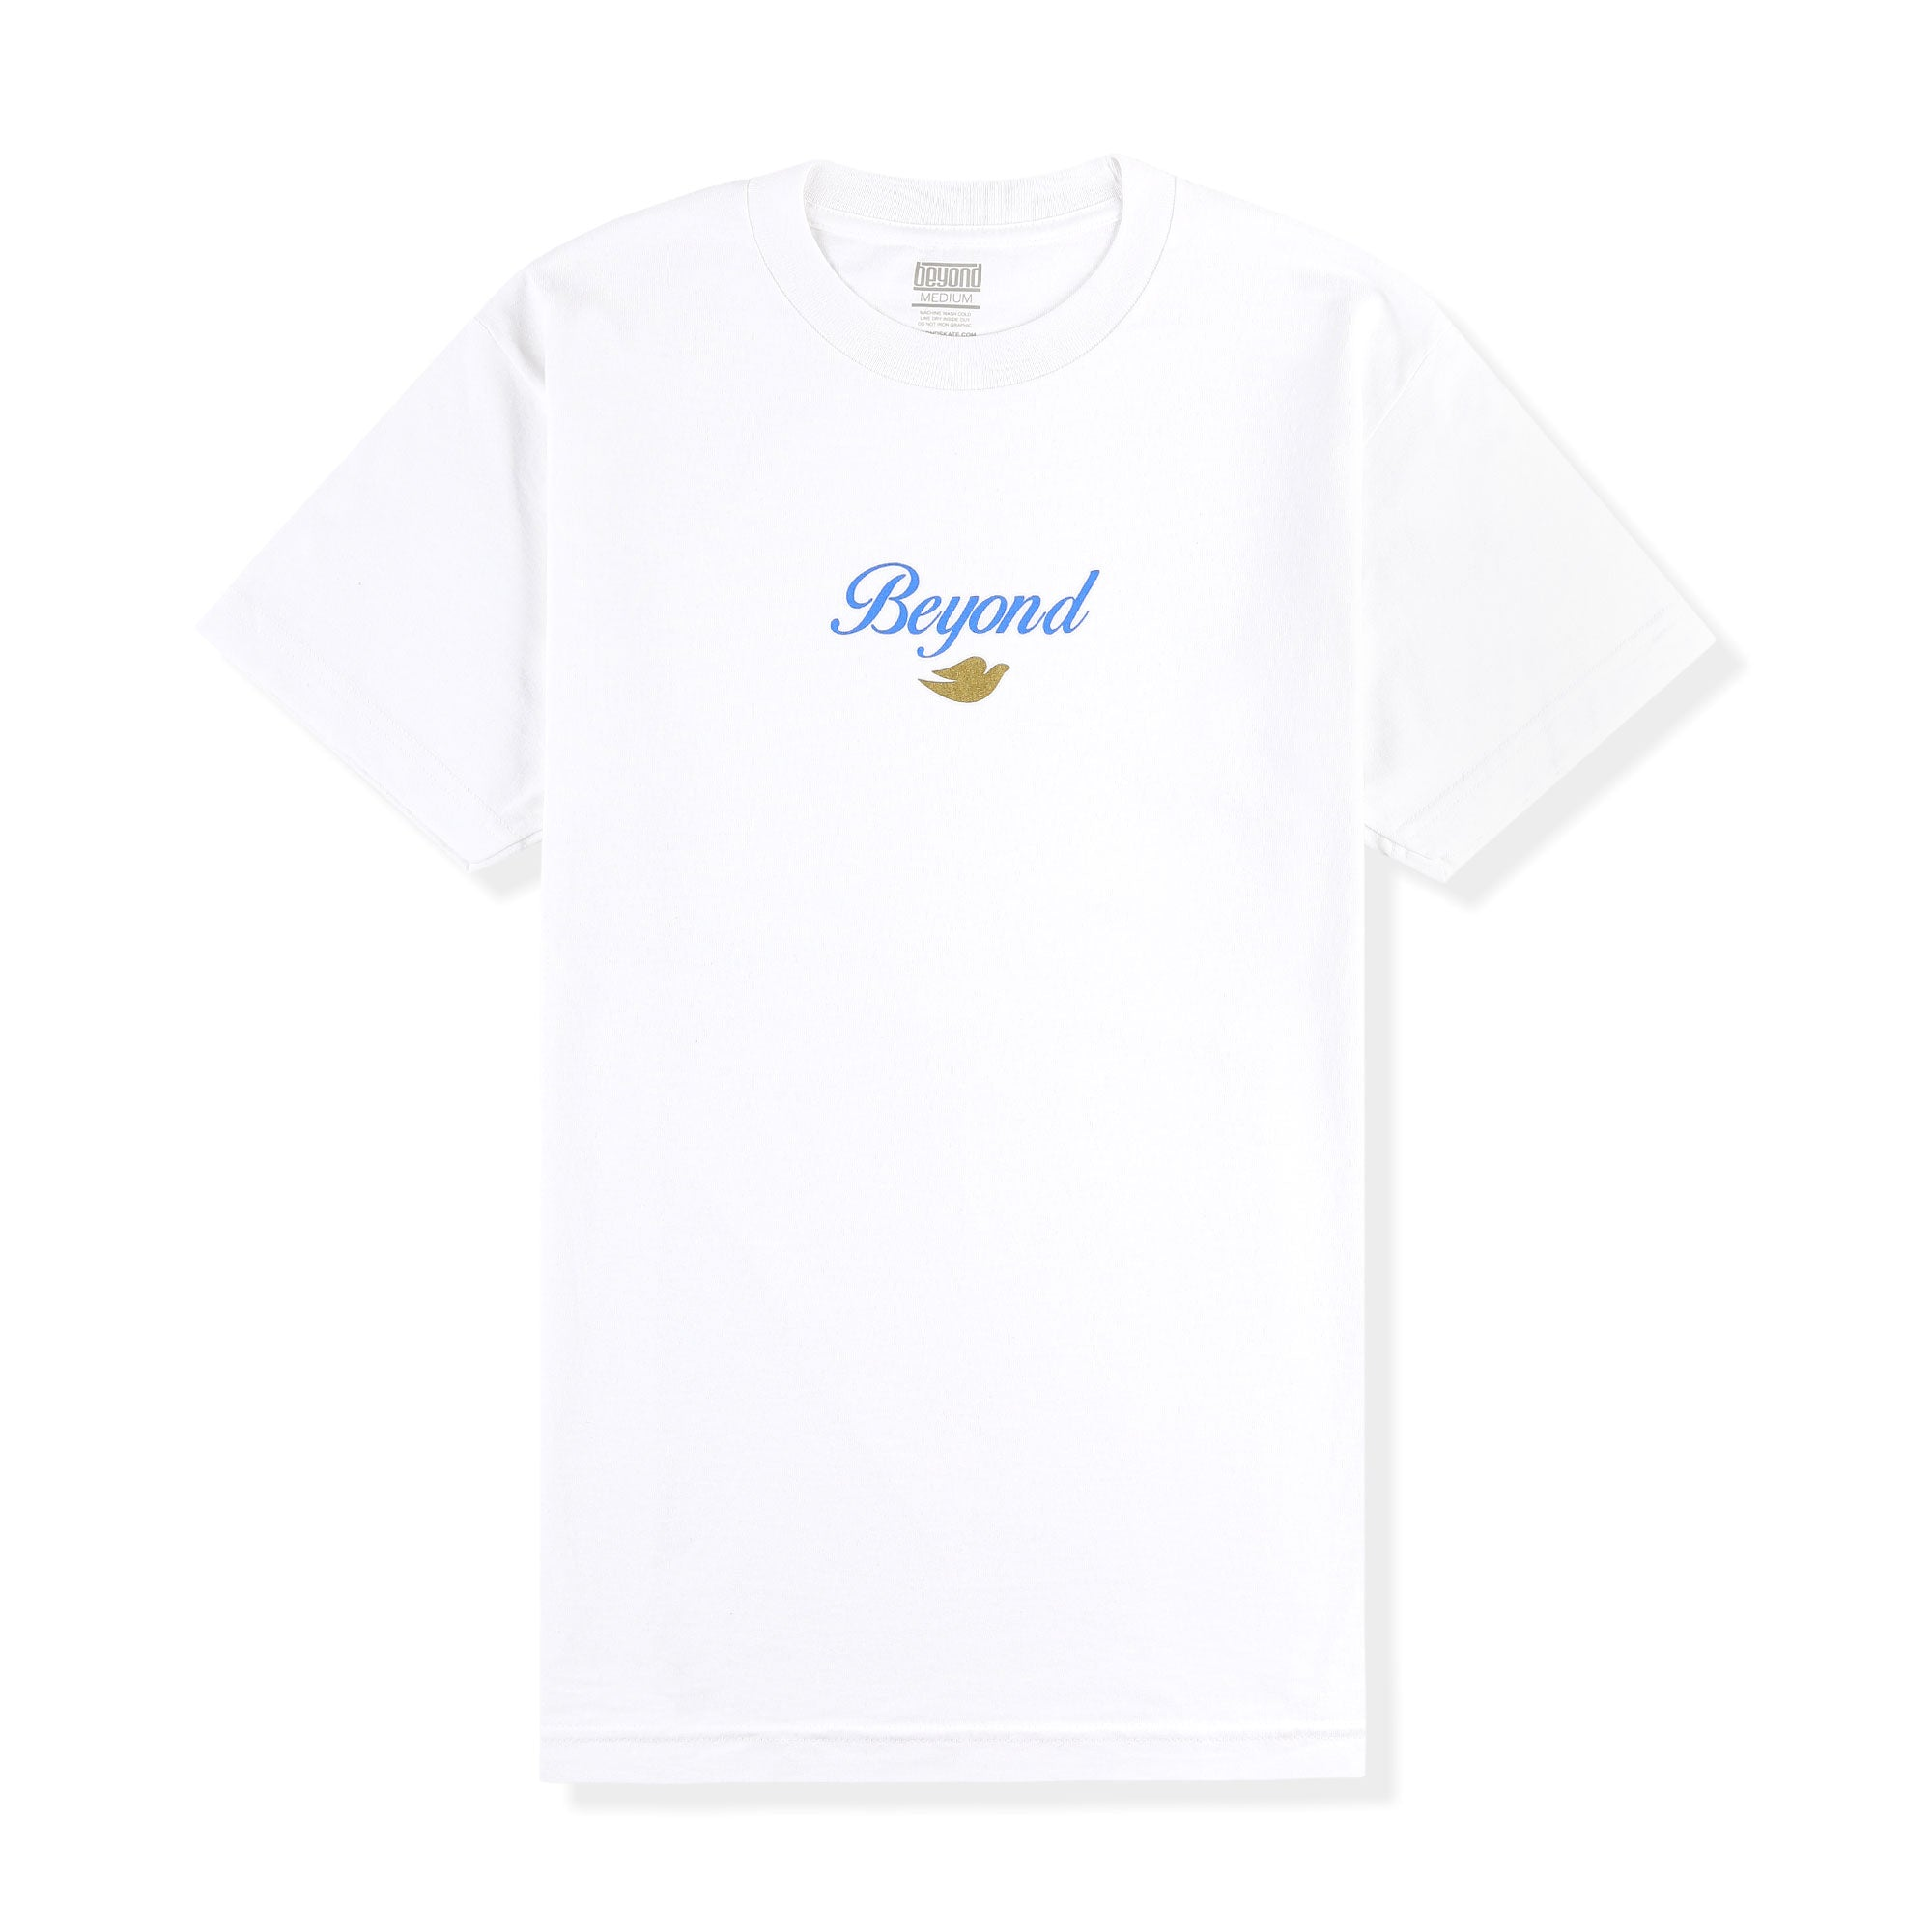 Beyond Soapy Tee Product Photo #1